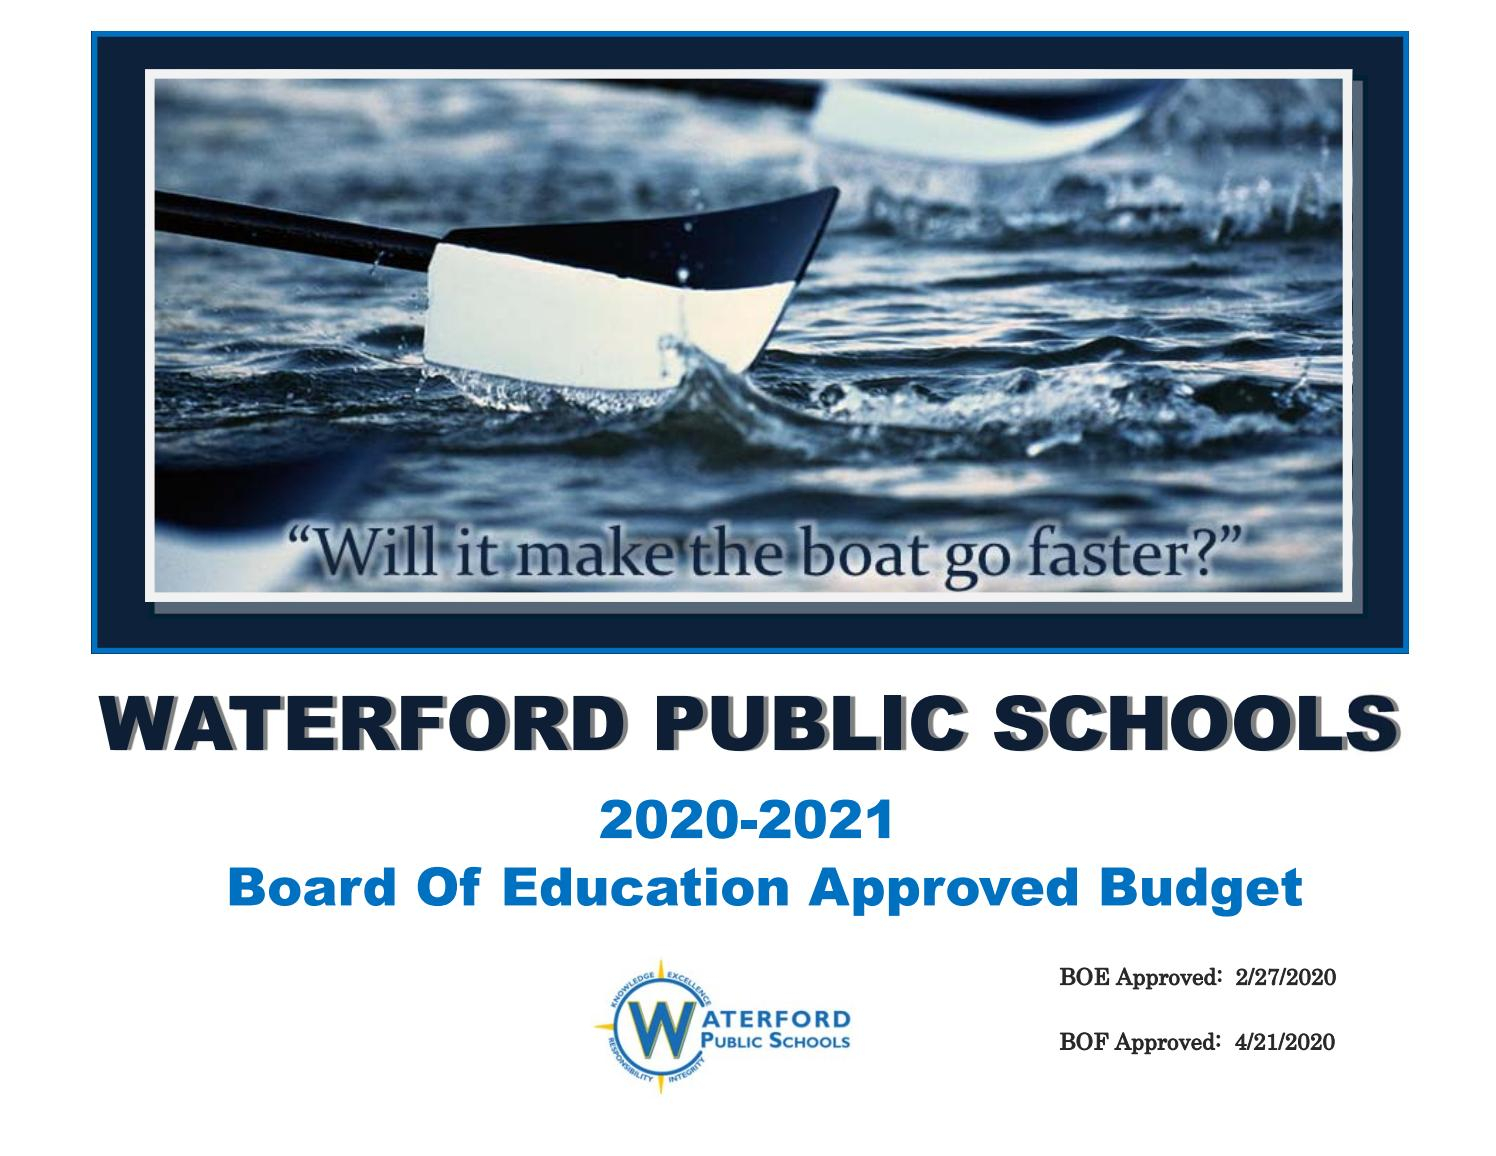 Waterford Board Of Education Fy21 Budget - Approvedthe Throughout Blue Valley Schools 2021 19 Calendar